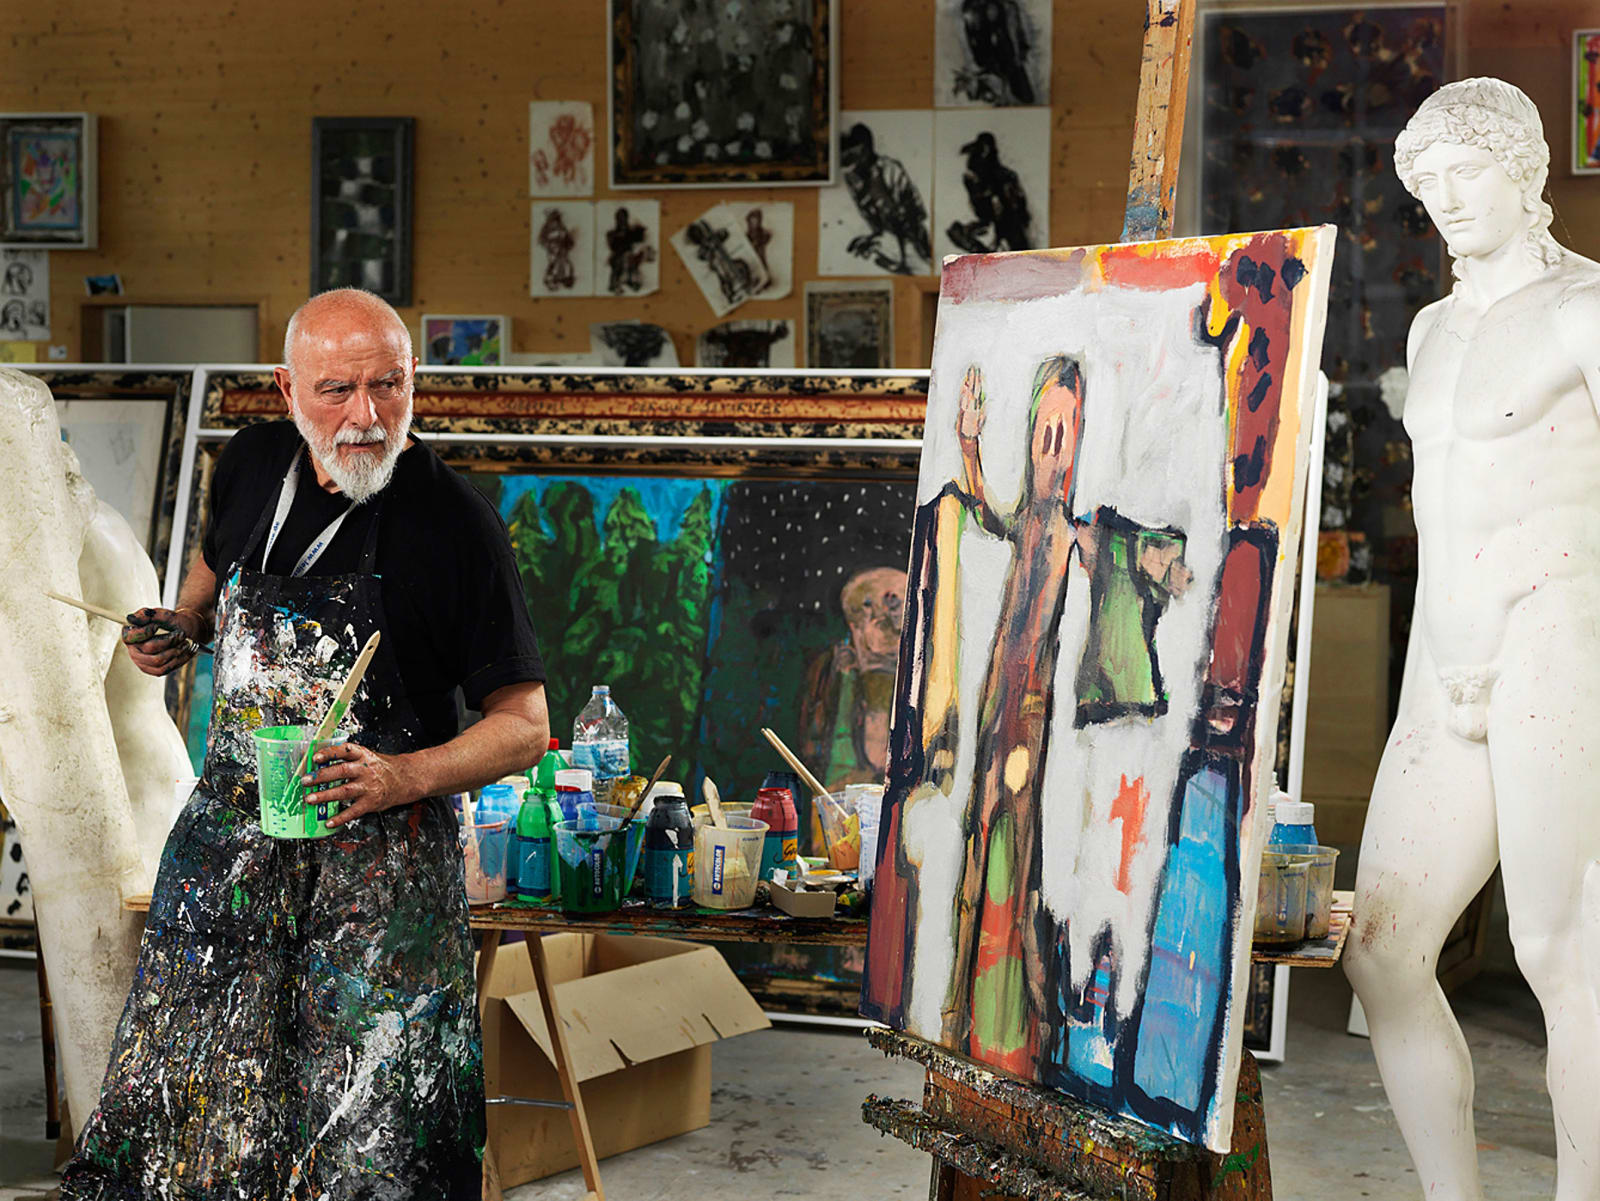 Markus Lüpertz in his studio photo by Andreas Jung